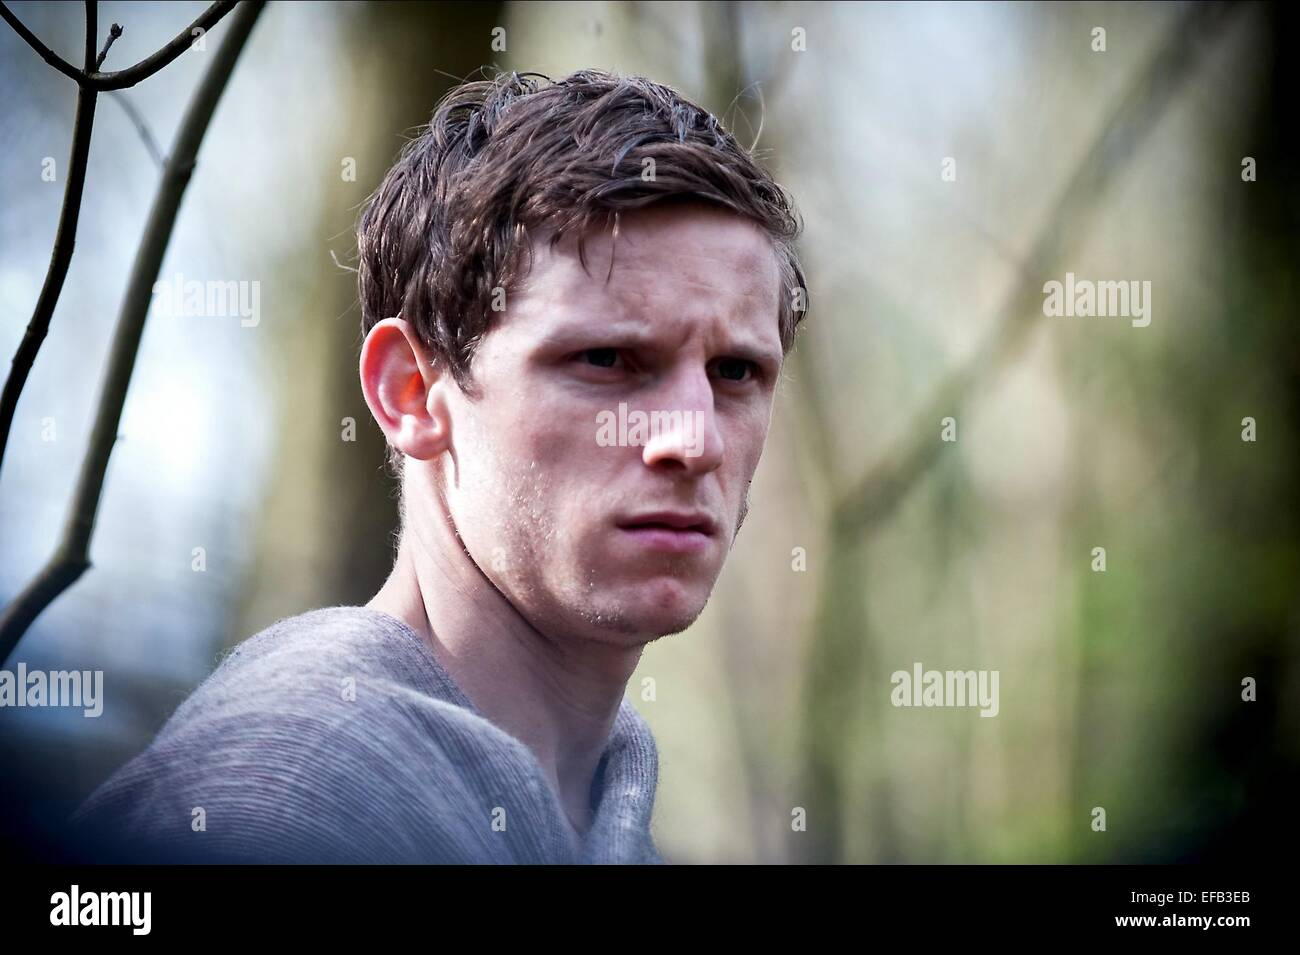 JAMIE BELL THE EAGLE; THE EAGLE OF THE NINTH (2011) - Stock Image